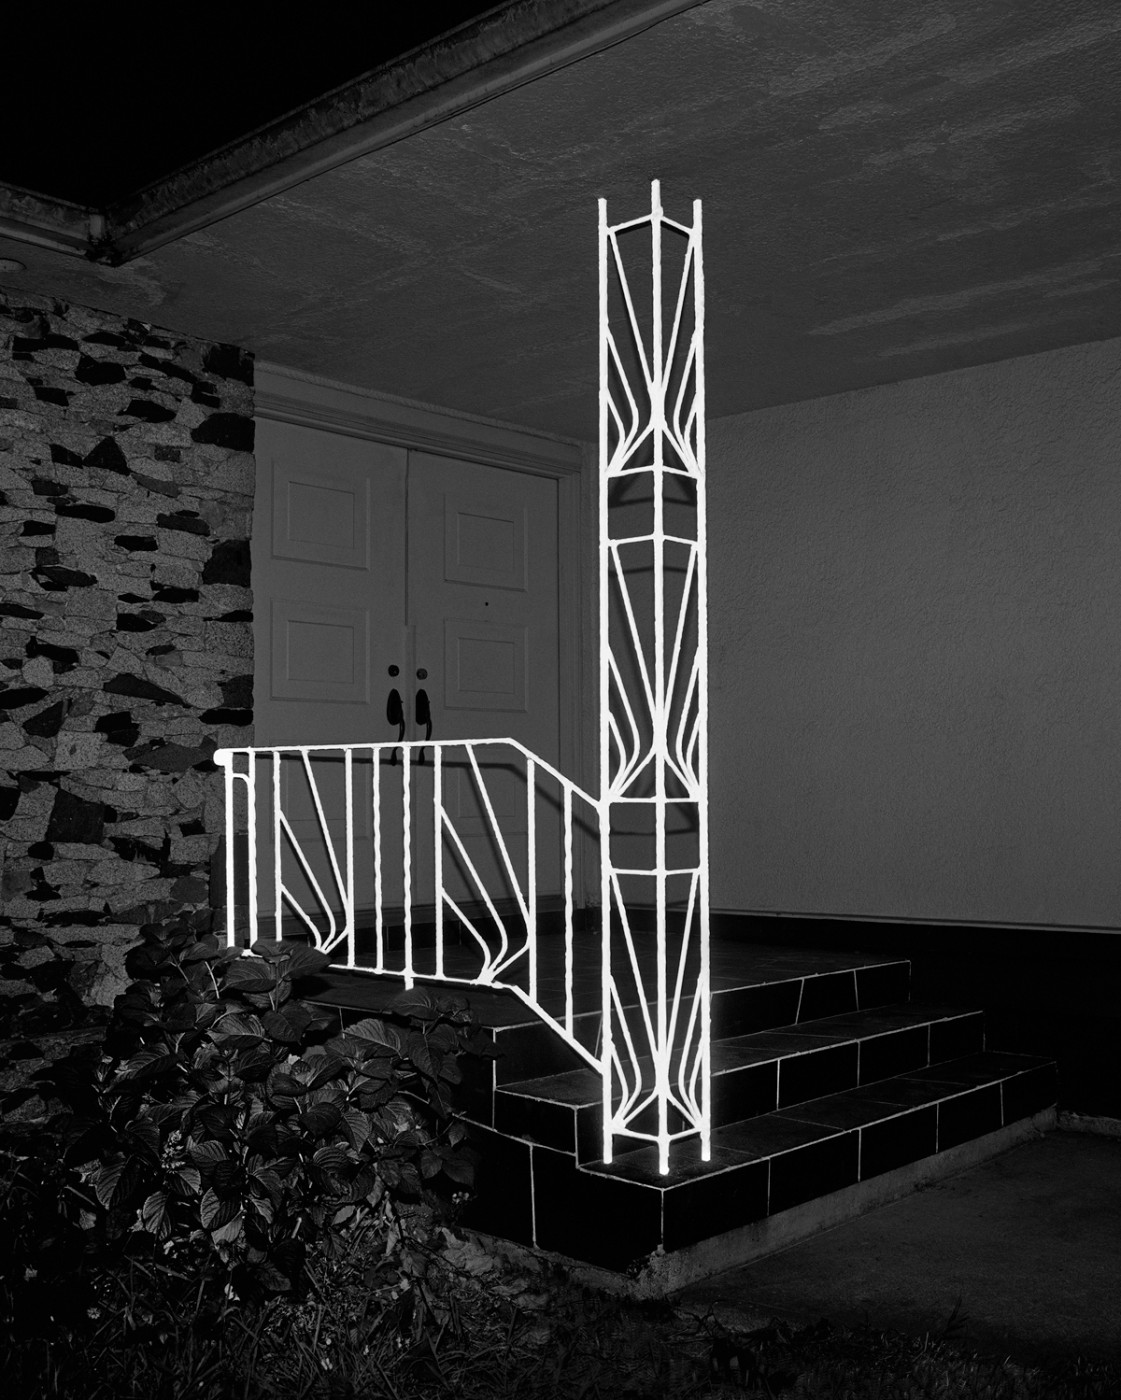 "James Nizam, </span><span><em>Railing, Illumincations Series</em>, </span><span>2014, Archival Pigment Print, 40""x32"", Courtesy of the artist and Birch Contemporary"